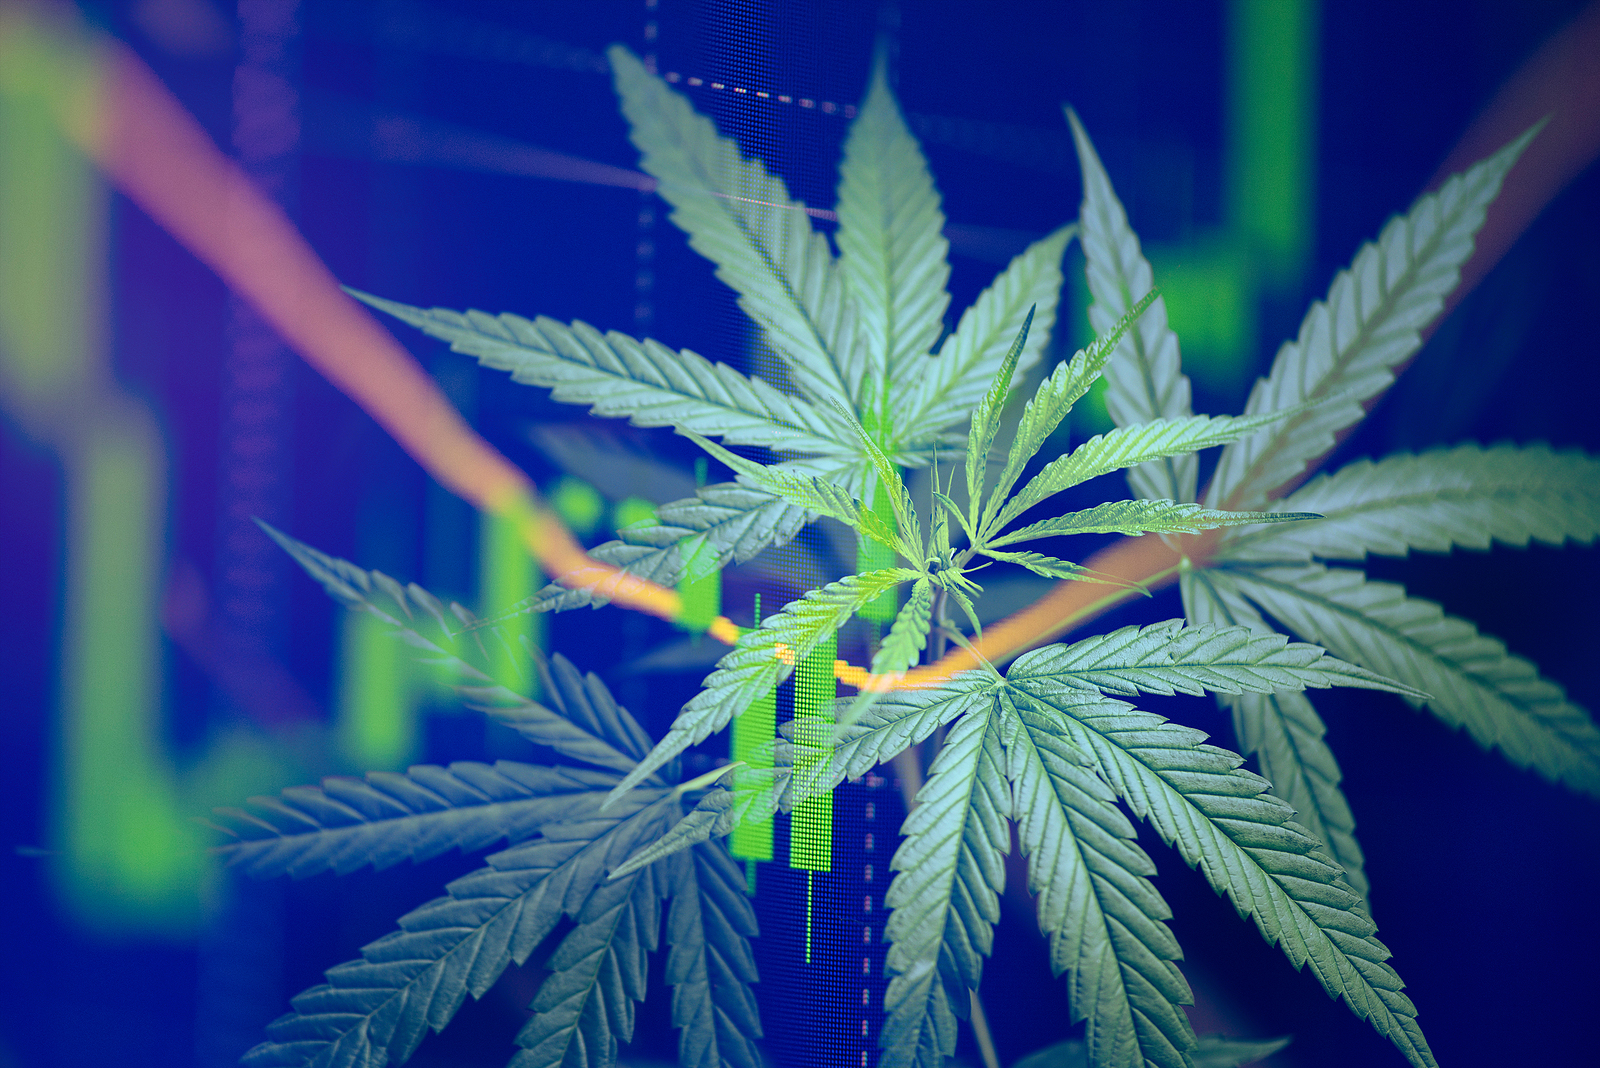 Cannabis Pot stock news and analysis